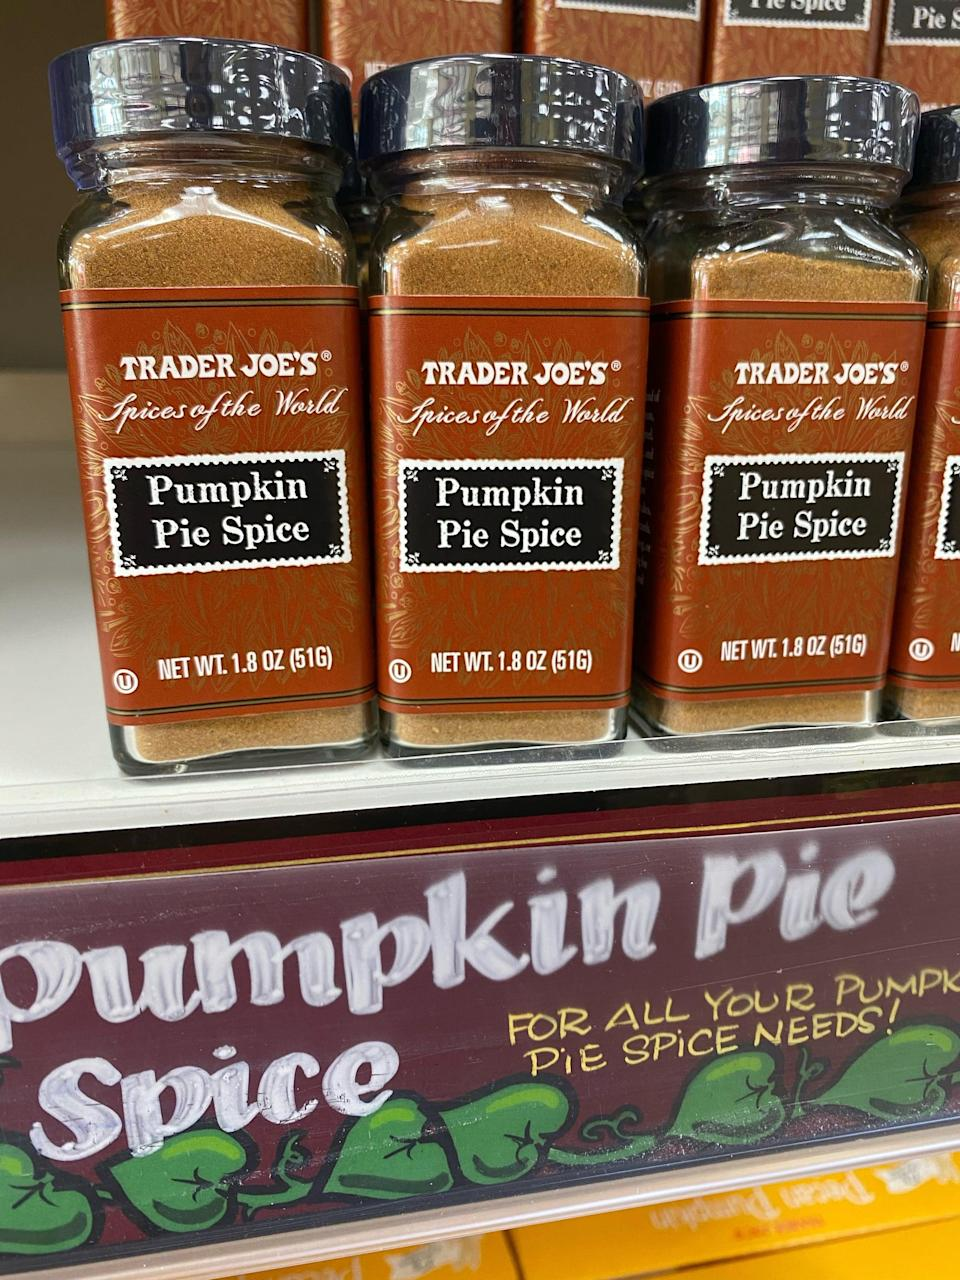 """<p>Of course you can use this to make a spice dessert like homemade pumpkin or apple pie, or <a href=""""https://www.popsugar.com/fitness/Healthy-Recipe-Apple-Pear-Oatmeal-Crisp-5911359"""" class=""""link rapid-noclick-resp"""" rel=""""nofollow noopener"""" target=""""_blank"""" data-ylk=""""slk:vegan apple pear crisp"""">vegan apple pear crisp</a>. But you can also sprinkle pumpkin pie spice over mashed sweet potatoes or roasted root veggies, like butternut squash or carrots.</p>"""